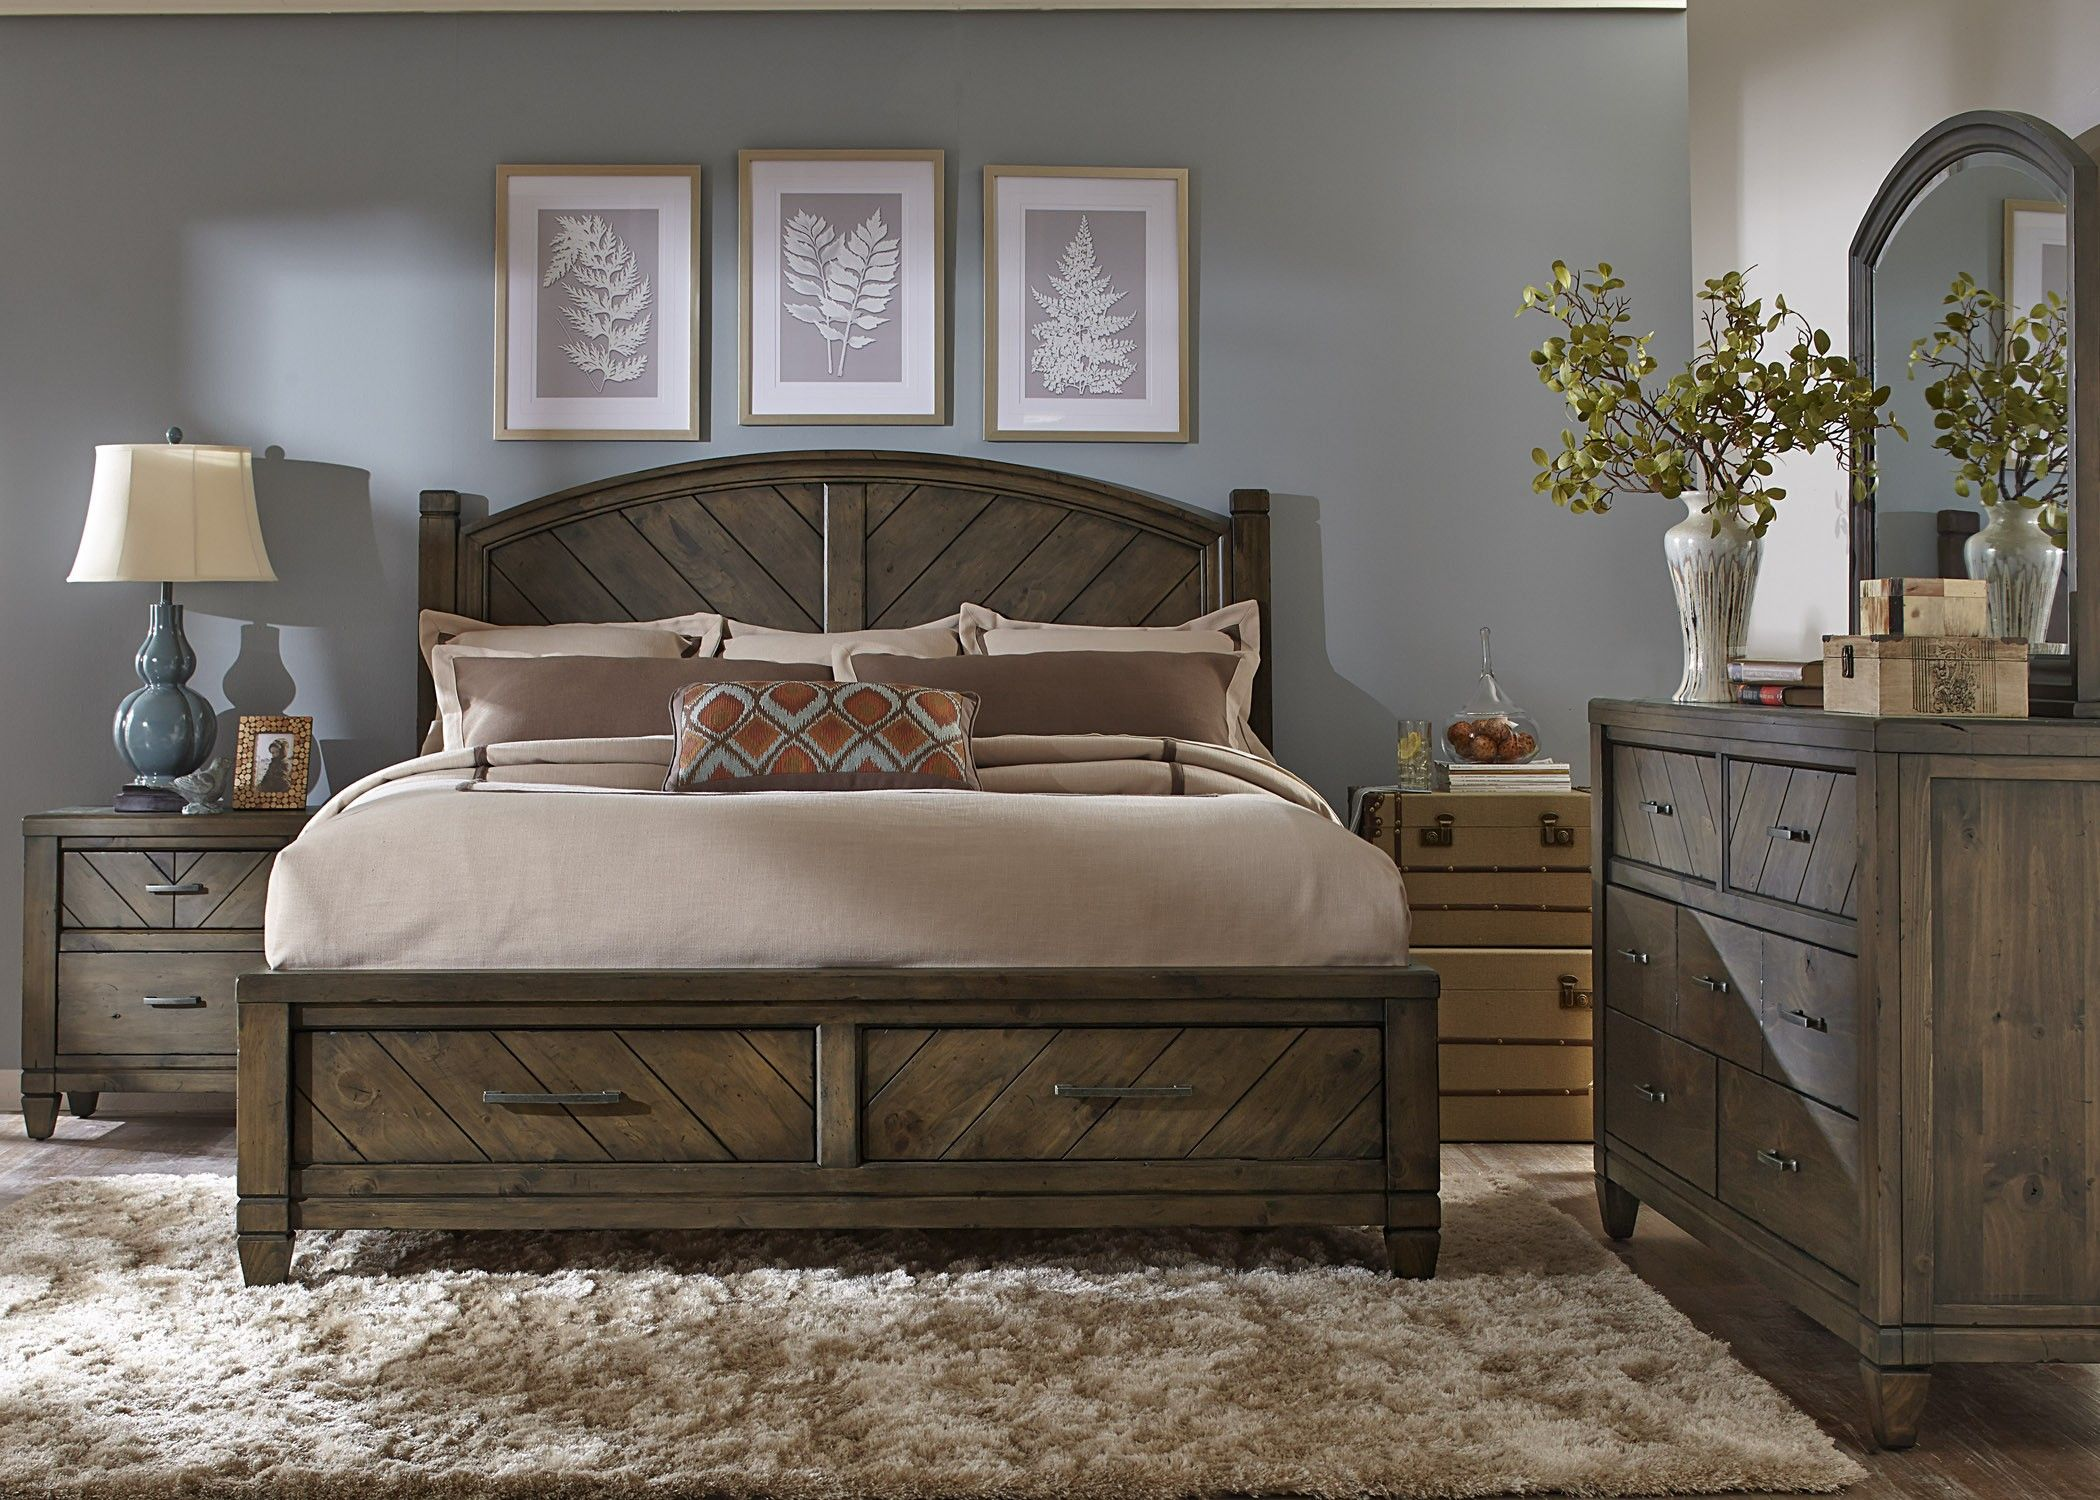 Modern Country Bedroom Set  BEDROOM  Modern country